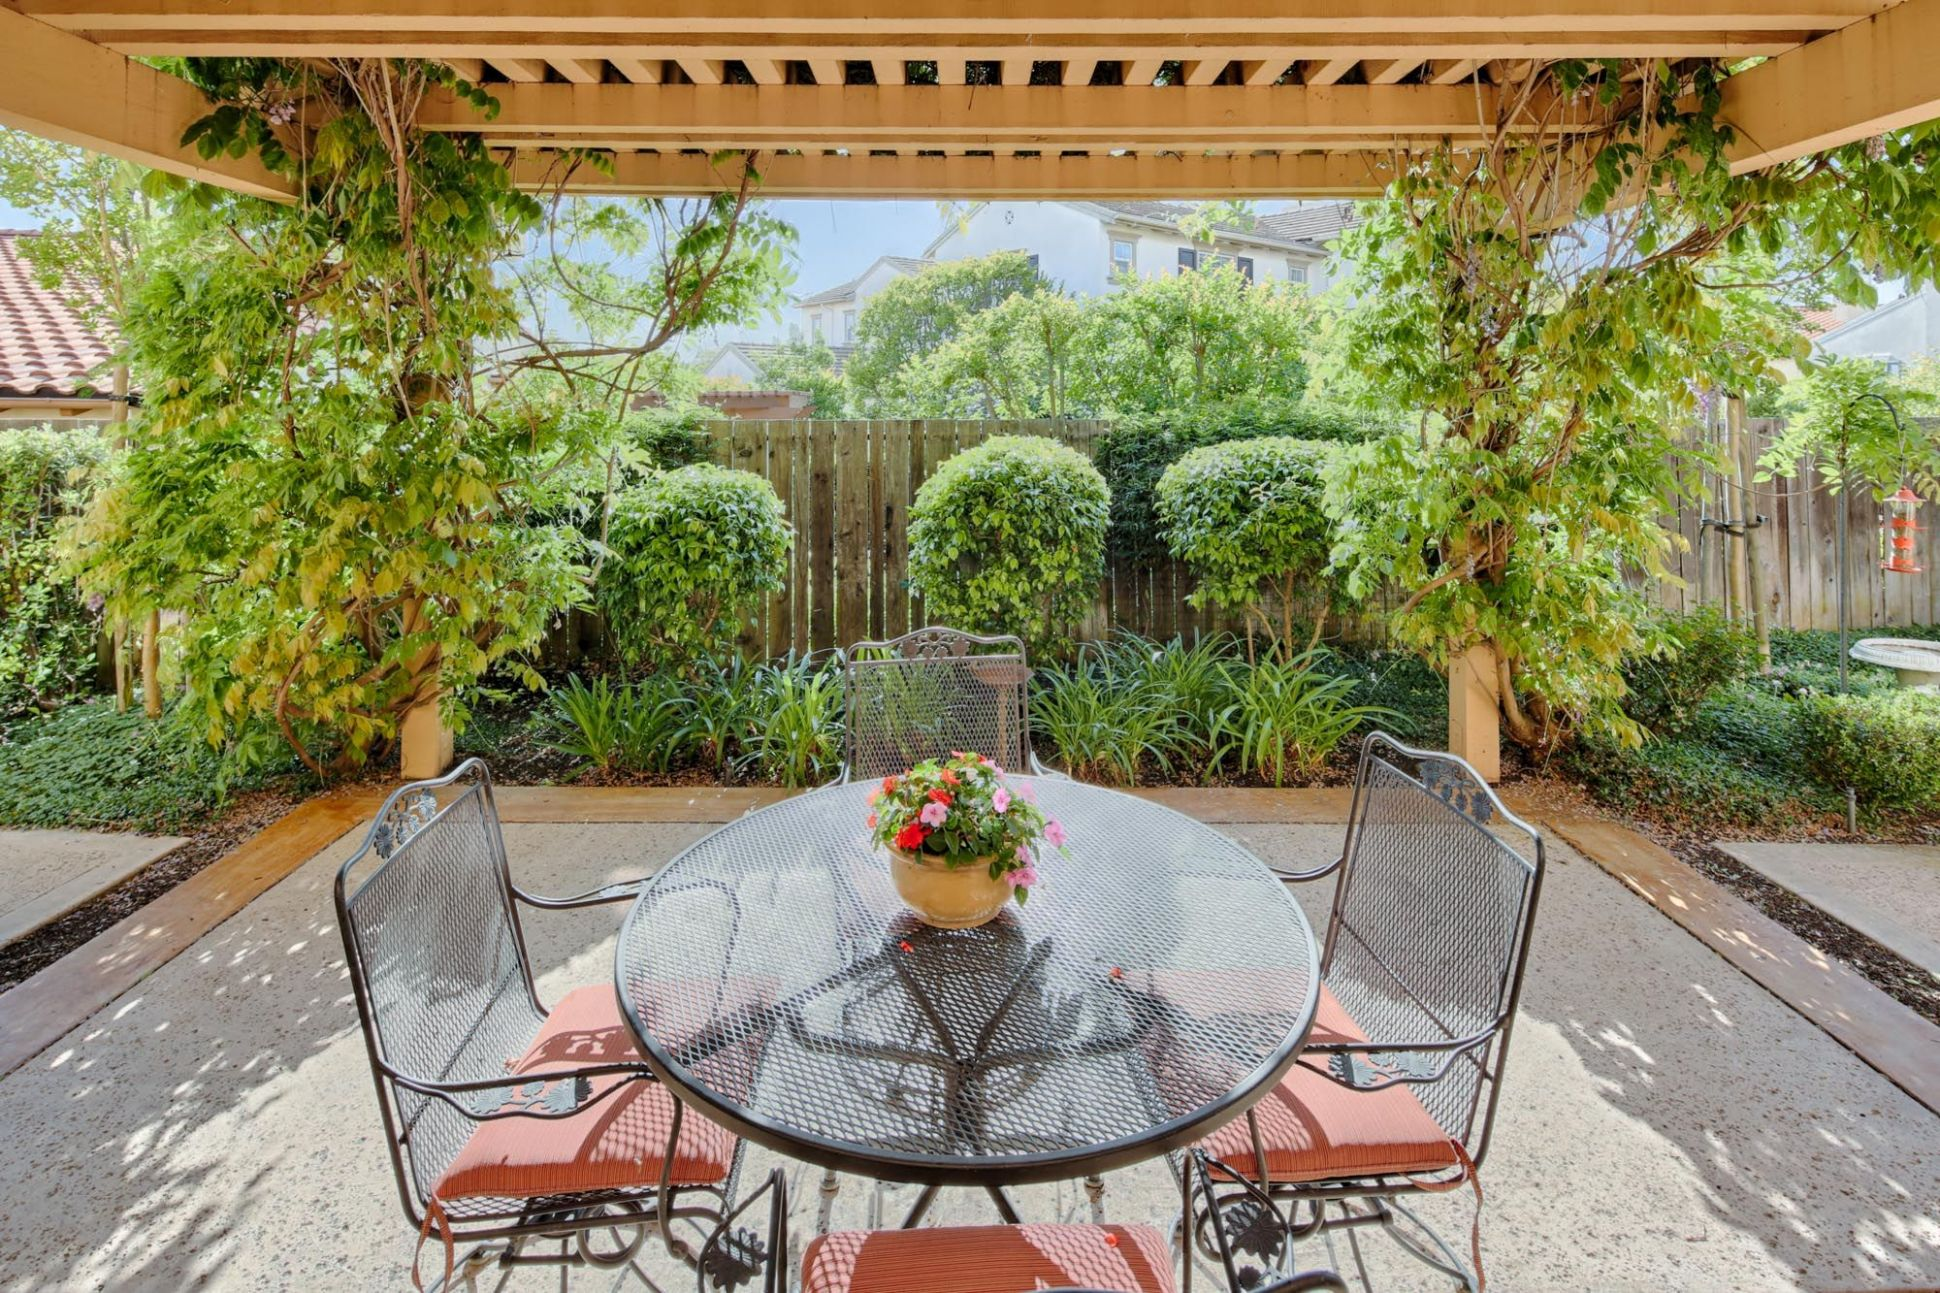 Imagine your morning coffee in this lush and quaint backyard ..